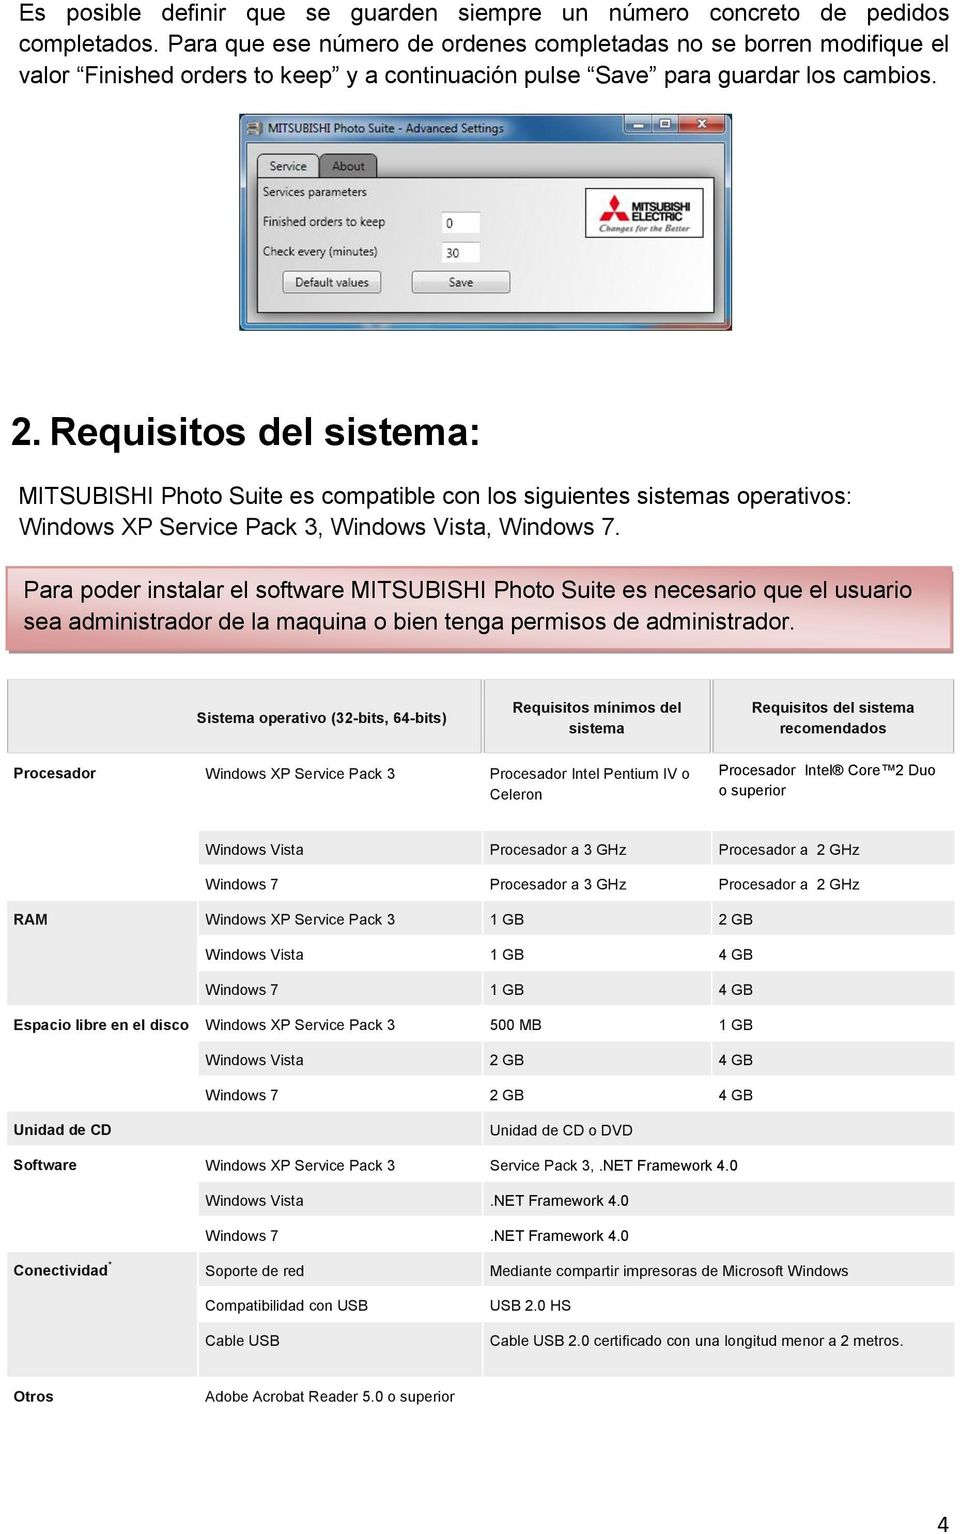 Requisitos del sistema: MITSUBISHI Photo Suite es compatible con los siguientes sistemas operativos: Windows XP Service Pack 3, Windows Vista, Windows 7.